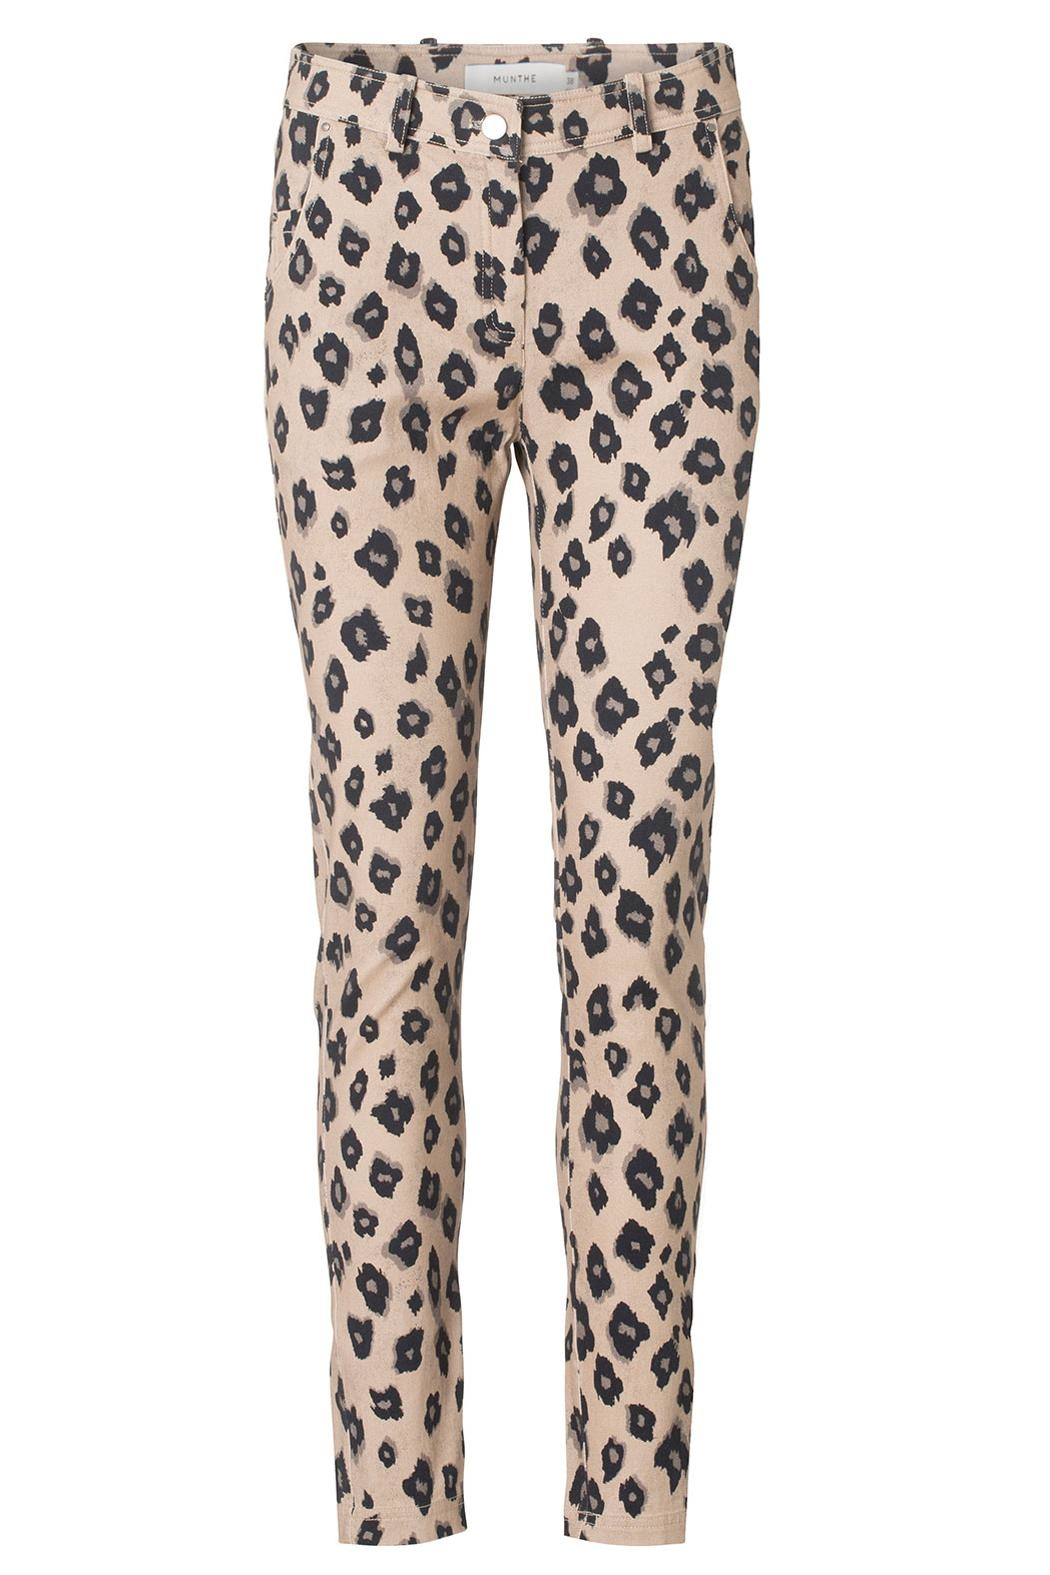 Munthe Leopard Print Jeans - Front Cropped Image